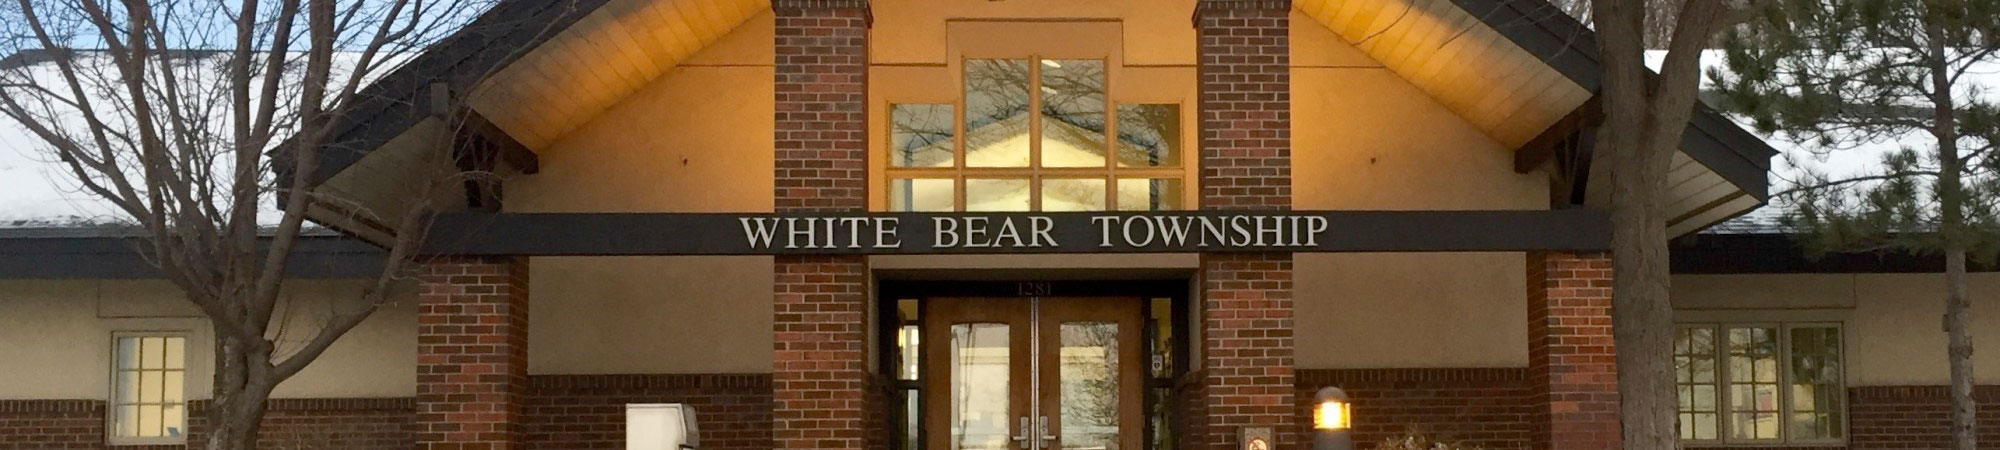 White Bear Township Image